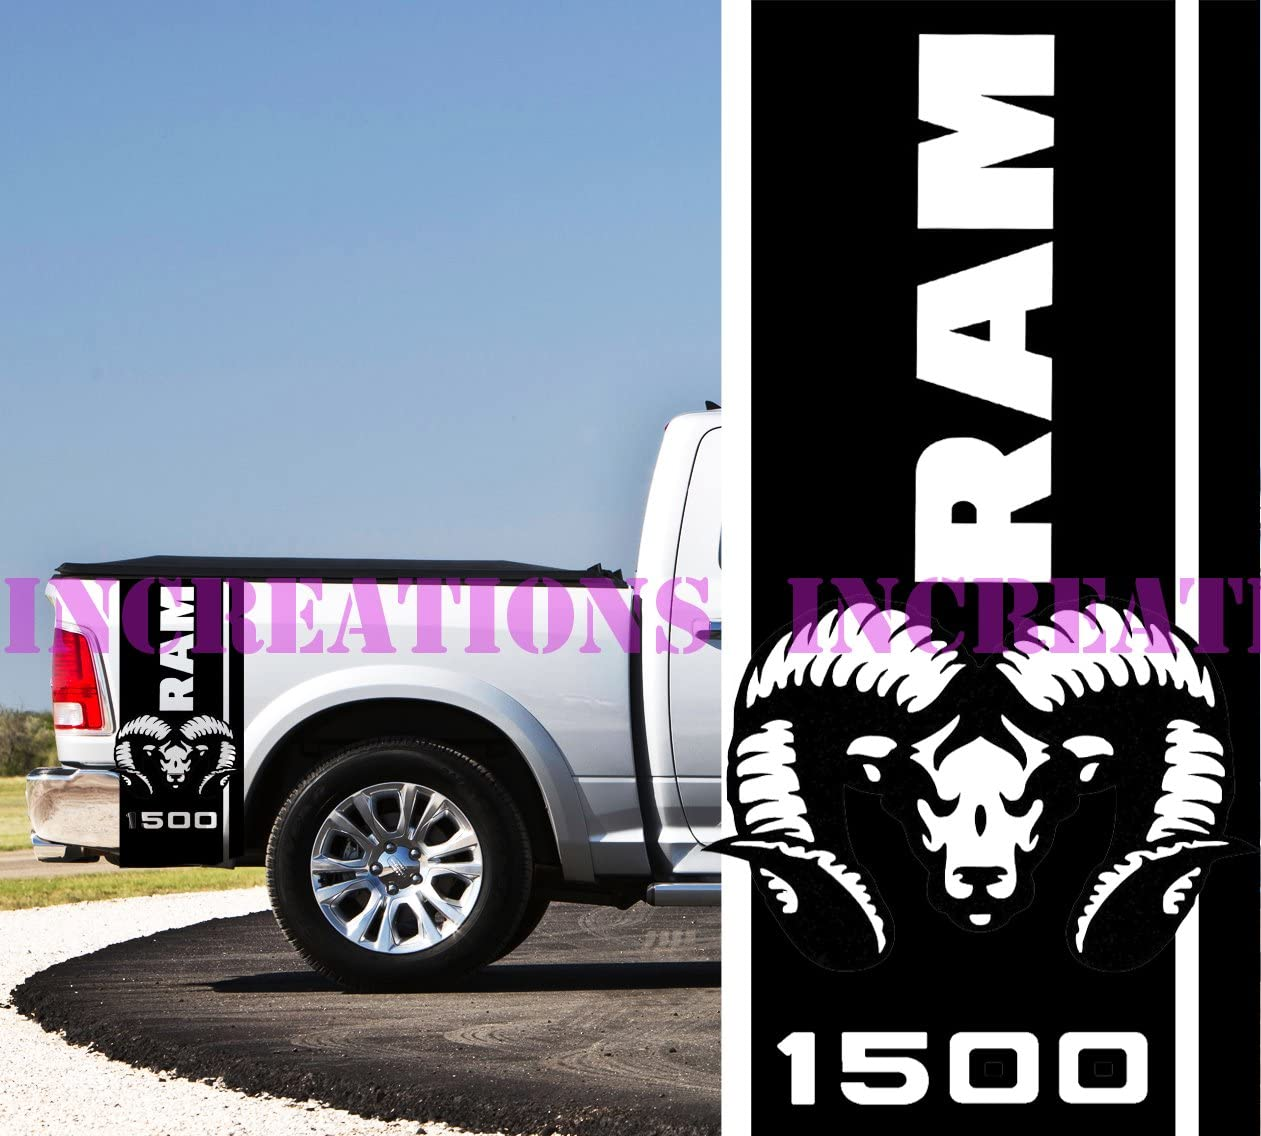 BLACK For Dodge Ram 1500 2500 3500 Rear Bed Truck Decals Stripes RAM HEAD Kit 40